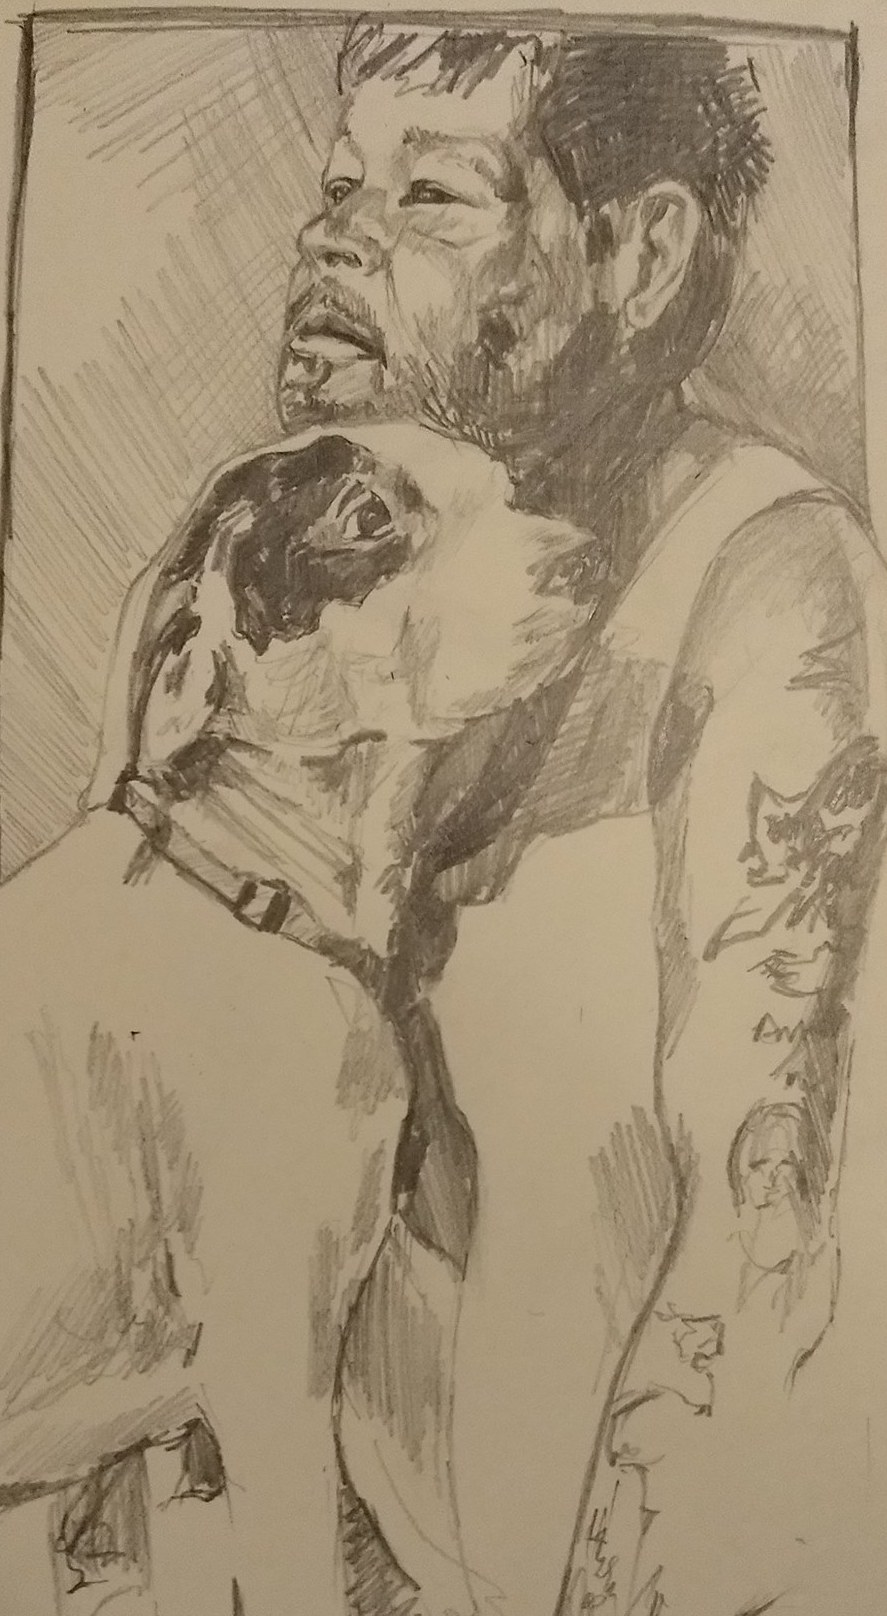 We love this drawing by our Cadence friend, Tim Stewart, of Tim and his dog, Patch.